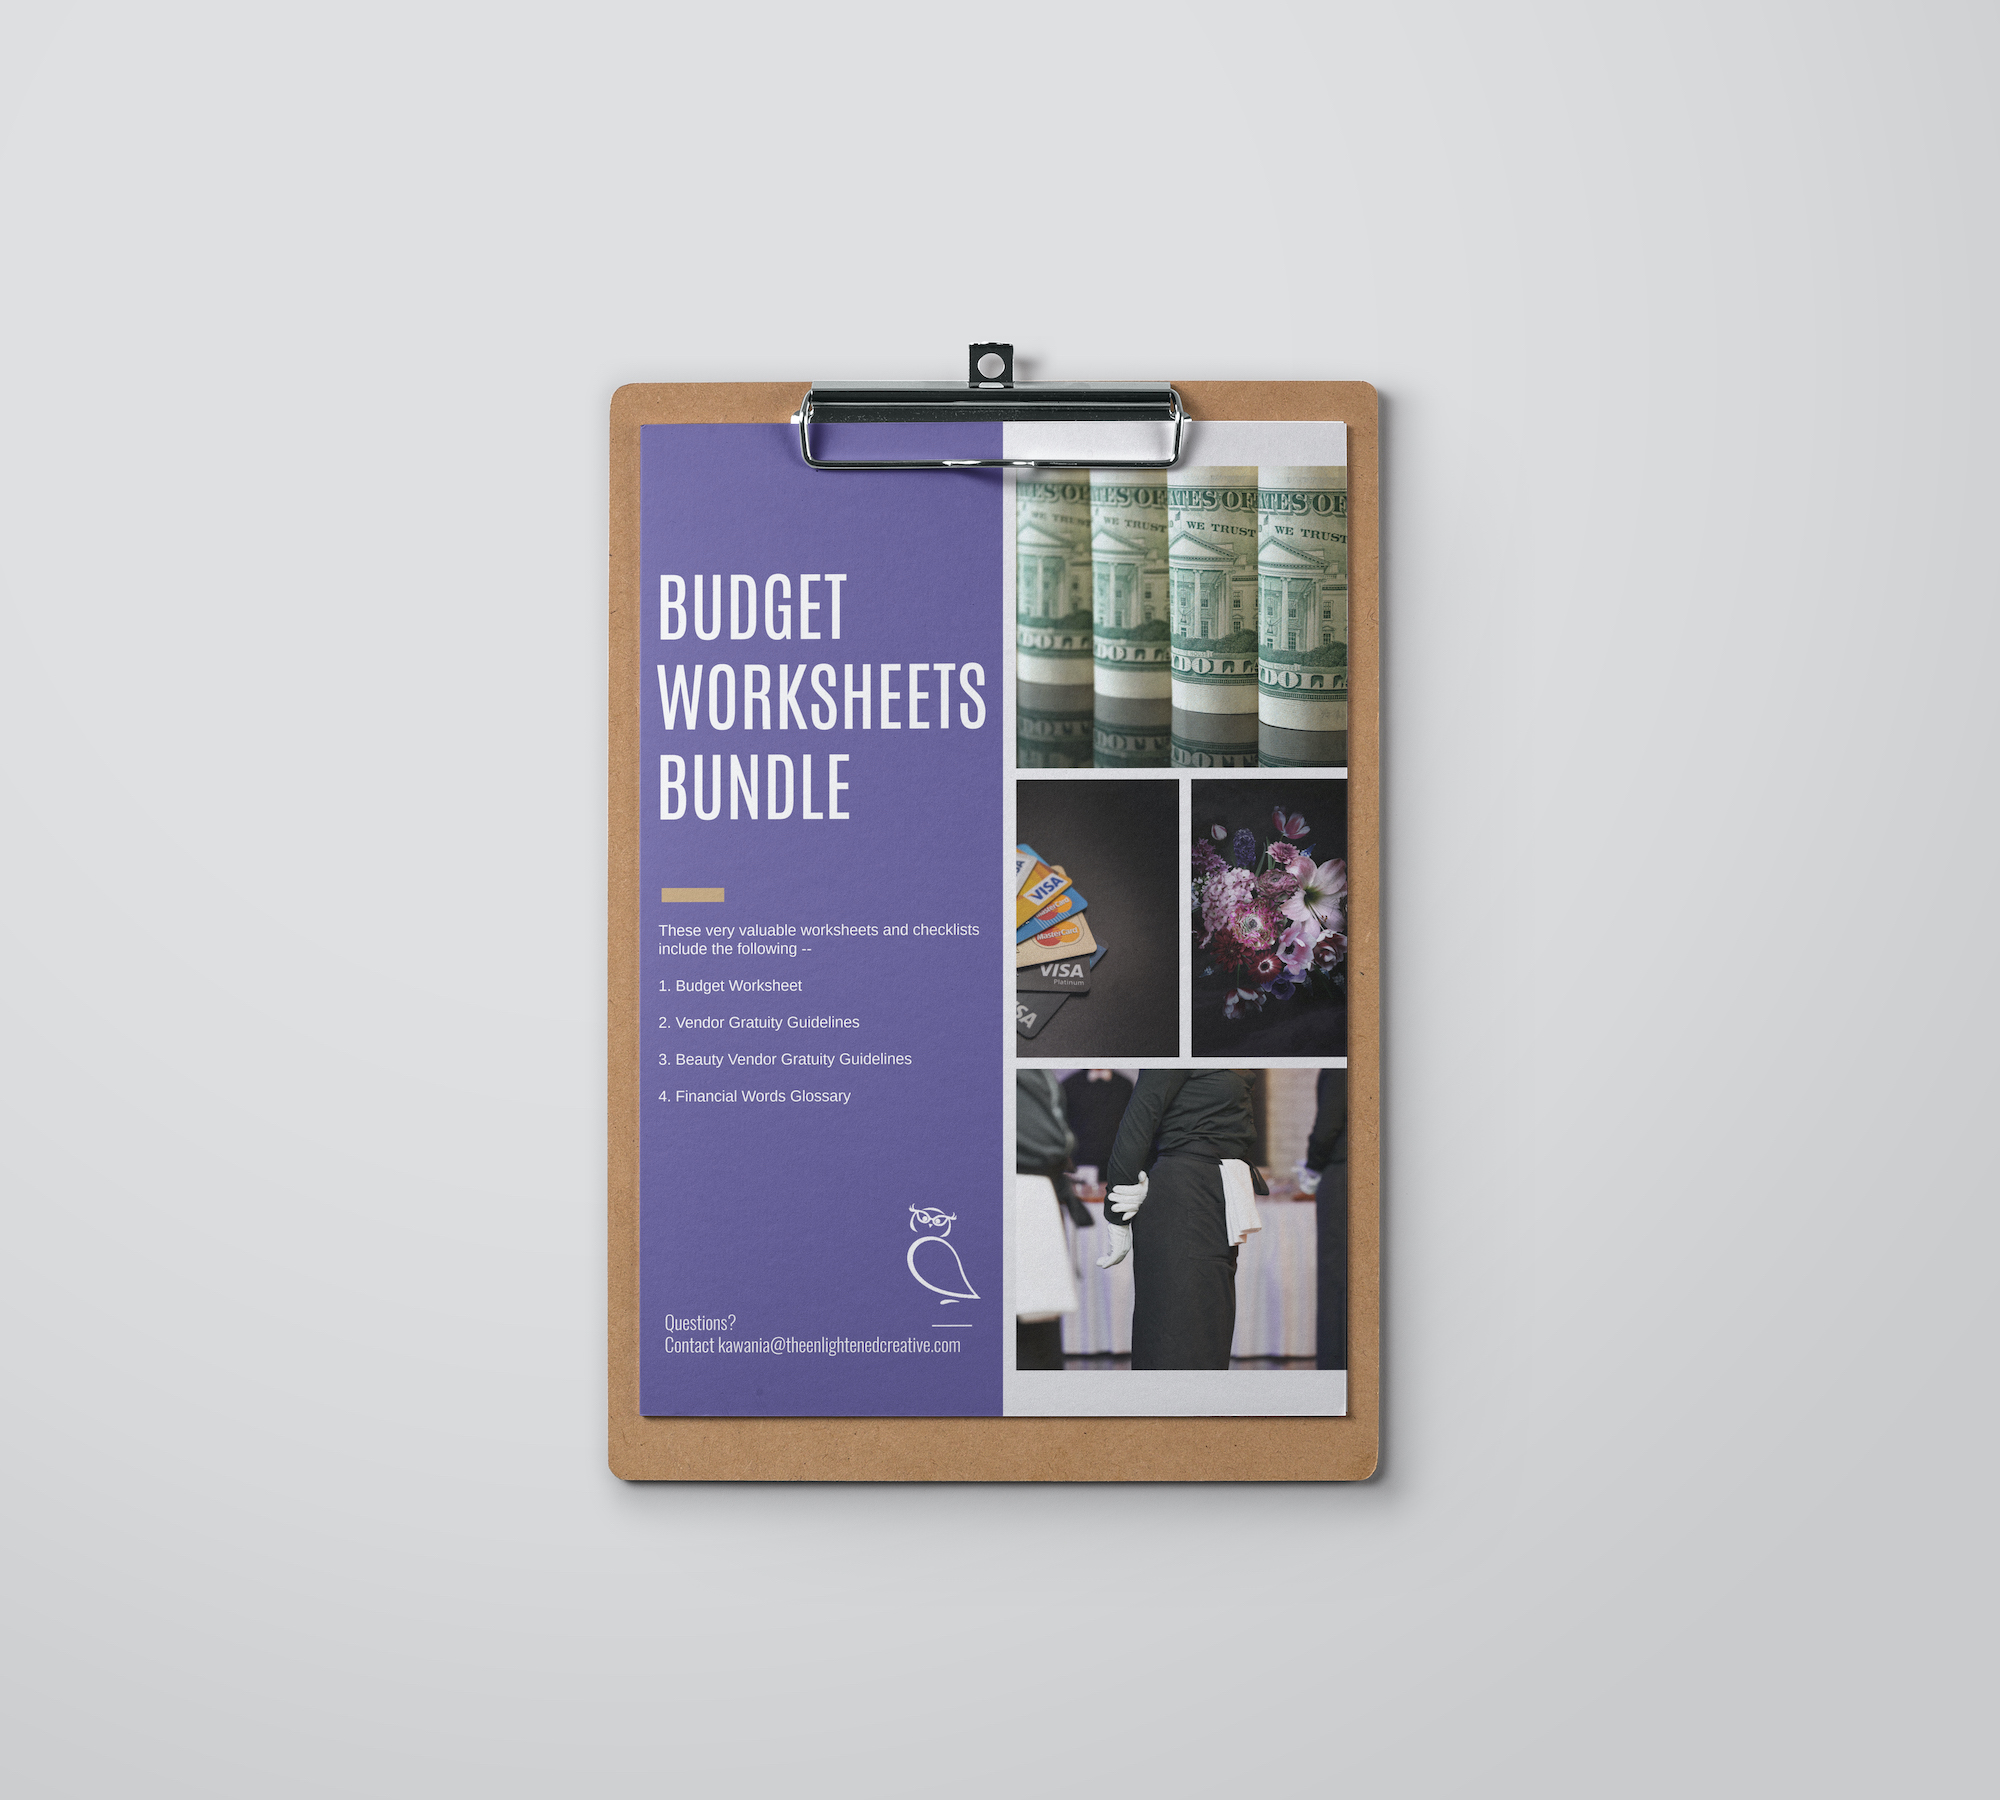 Budget Worksheet Vendor Gratuity Guidelines And Glossary